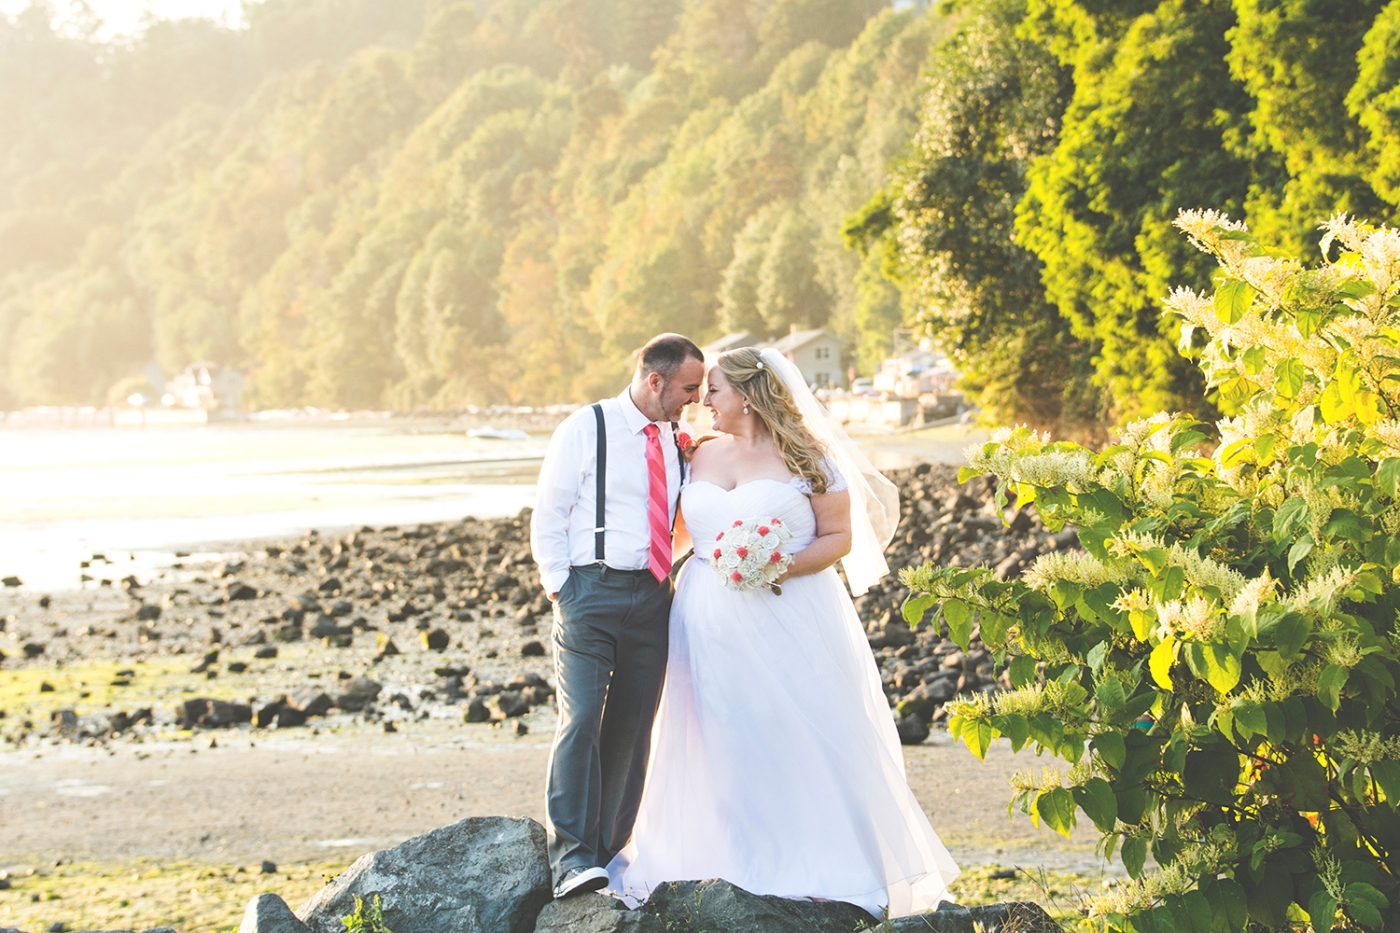 Jane_Speleers_Photography_Seattle_Wedding_waterfront_JS7_9546-Recovered